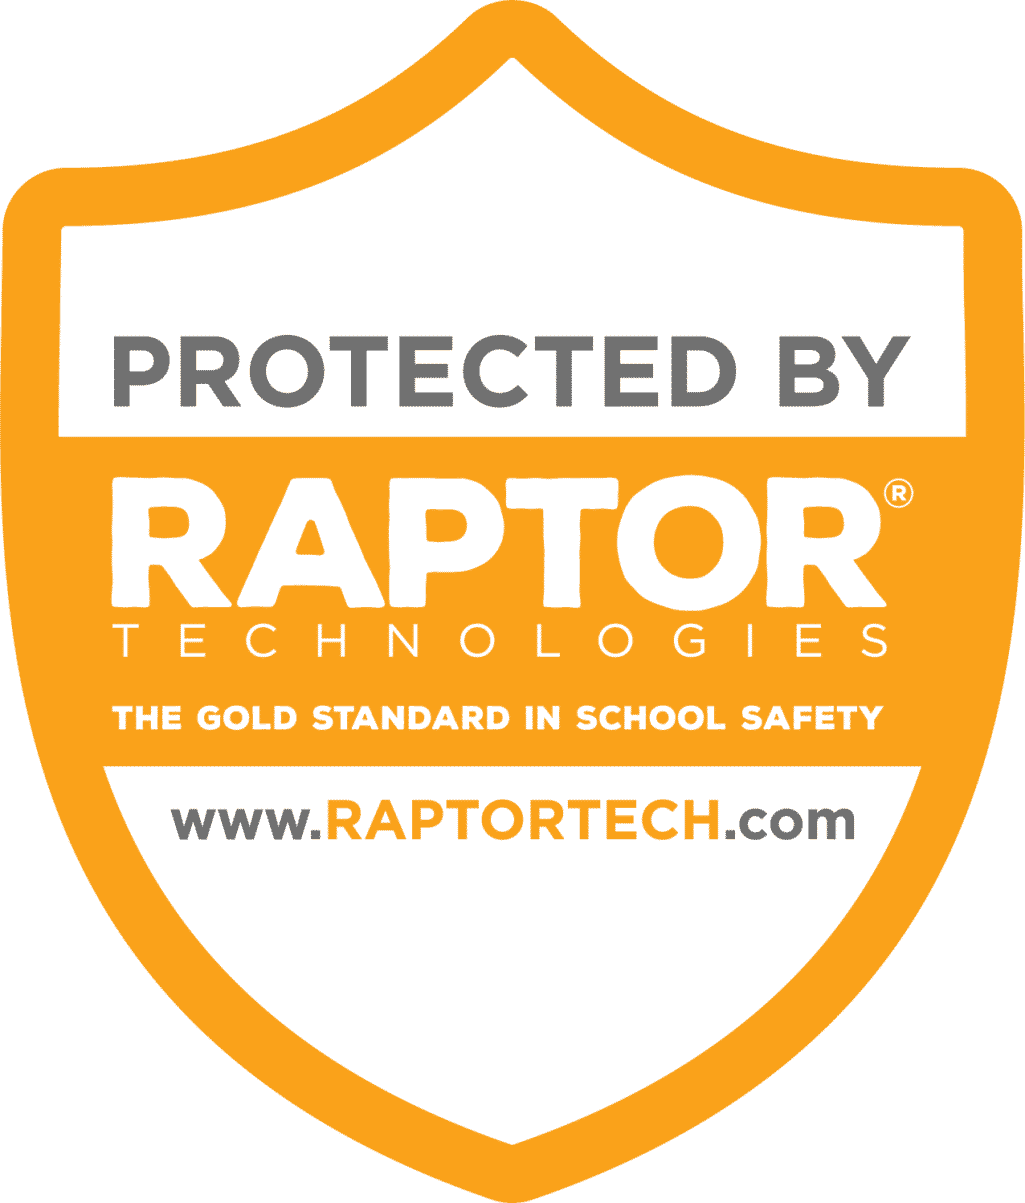 Raptor Technologies security system